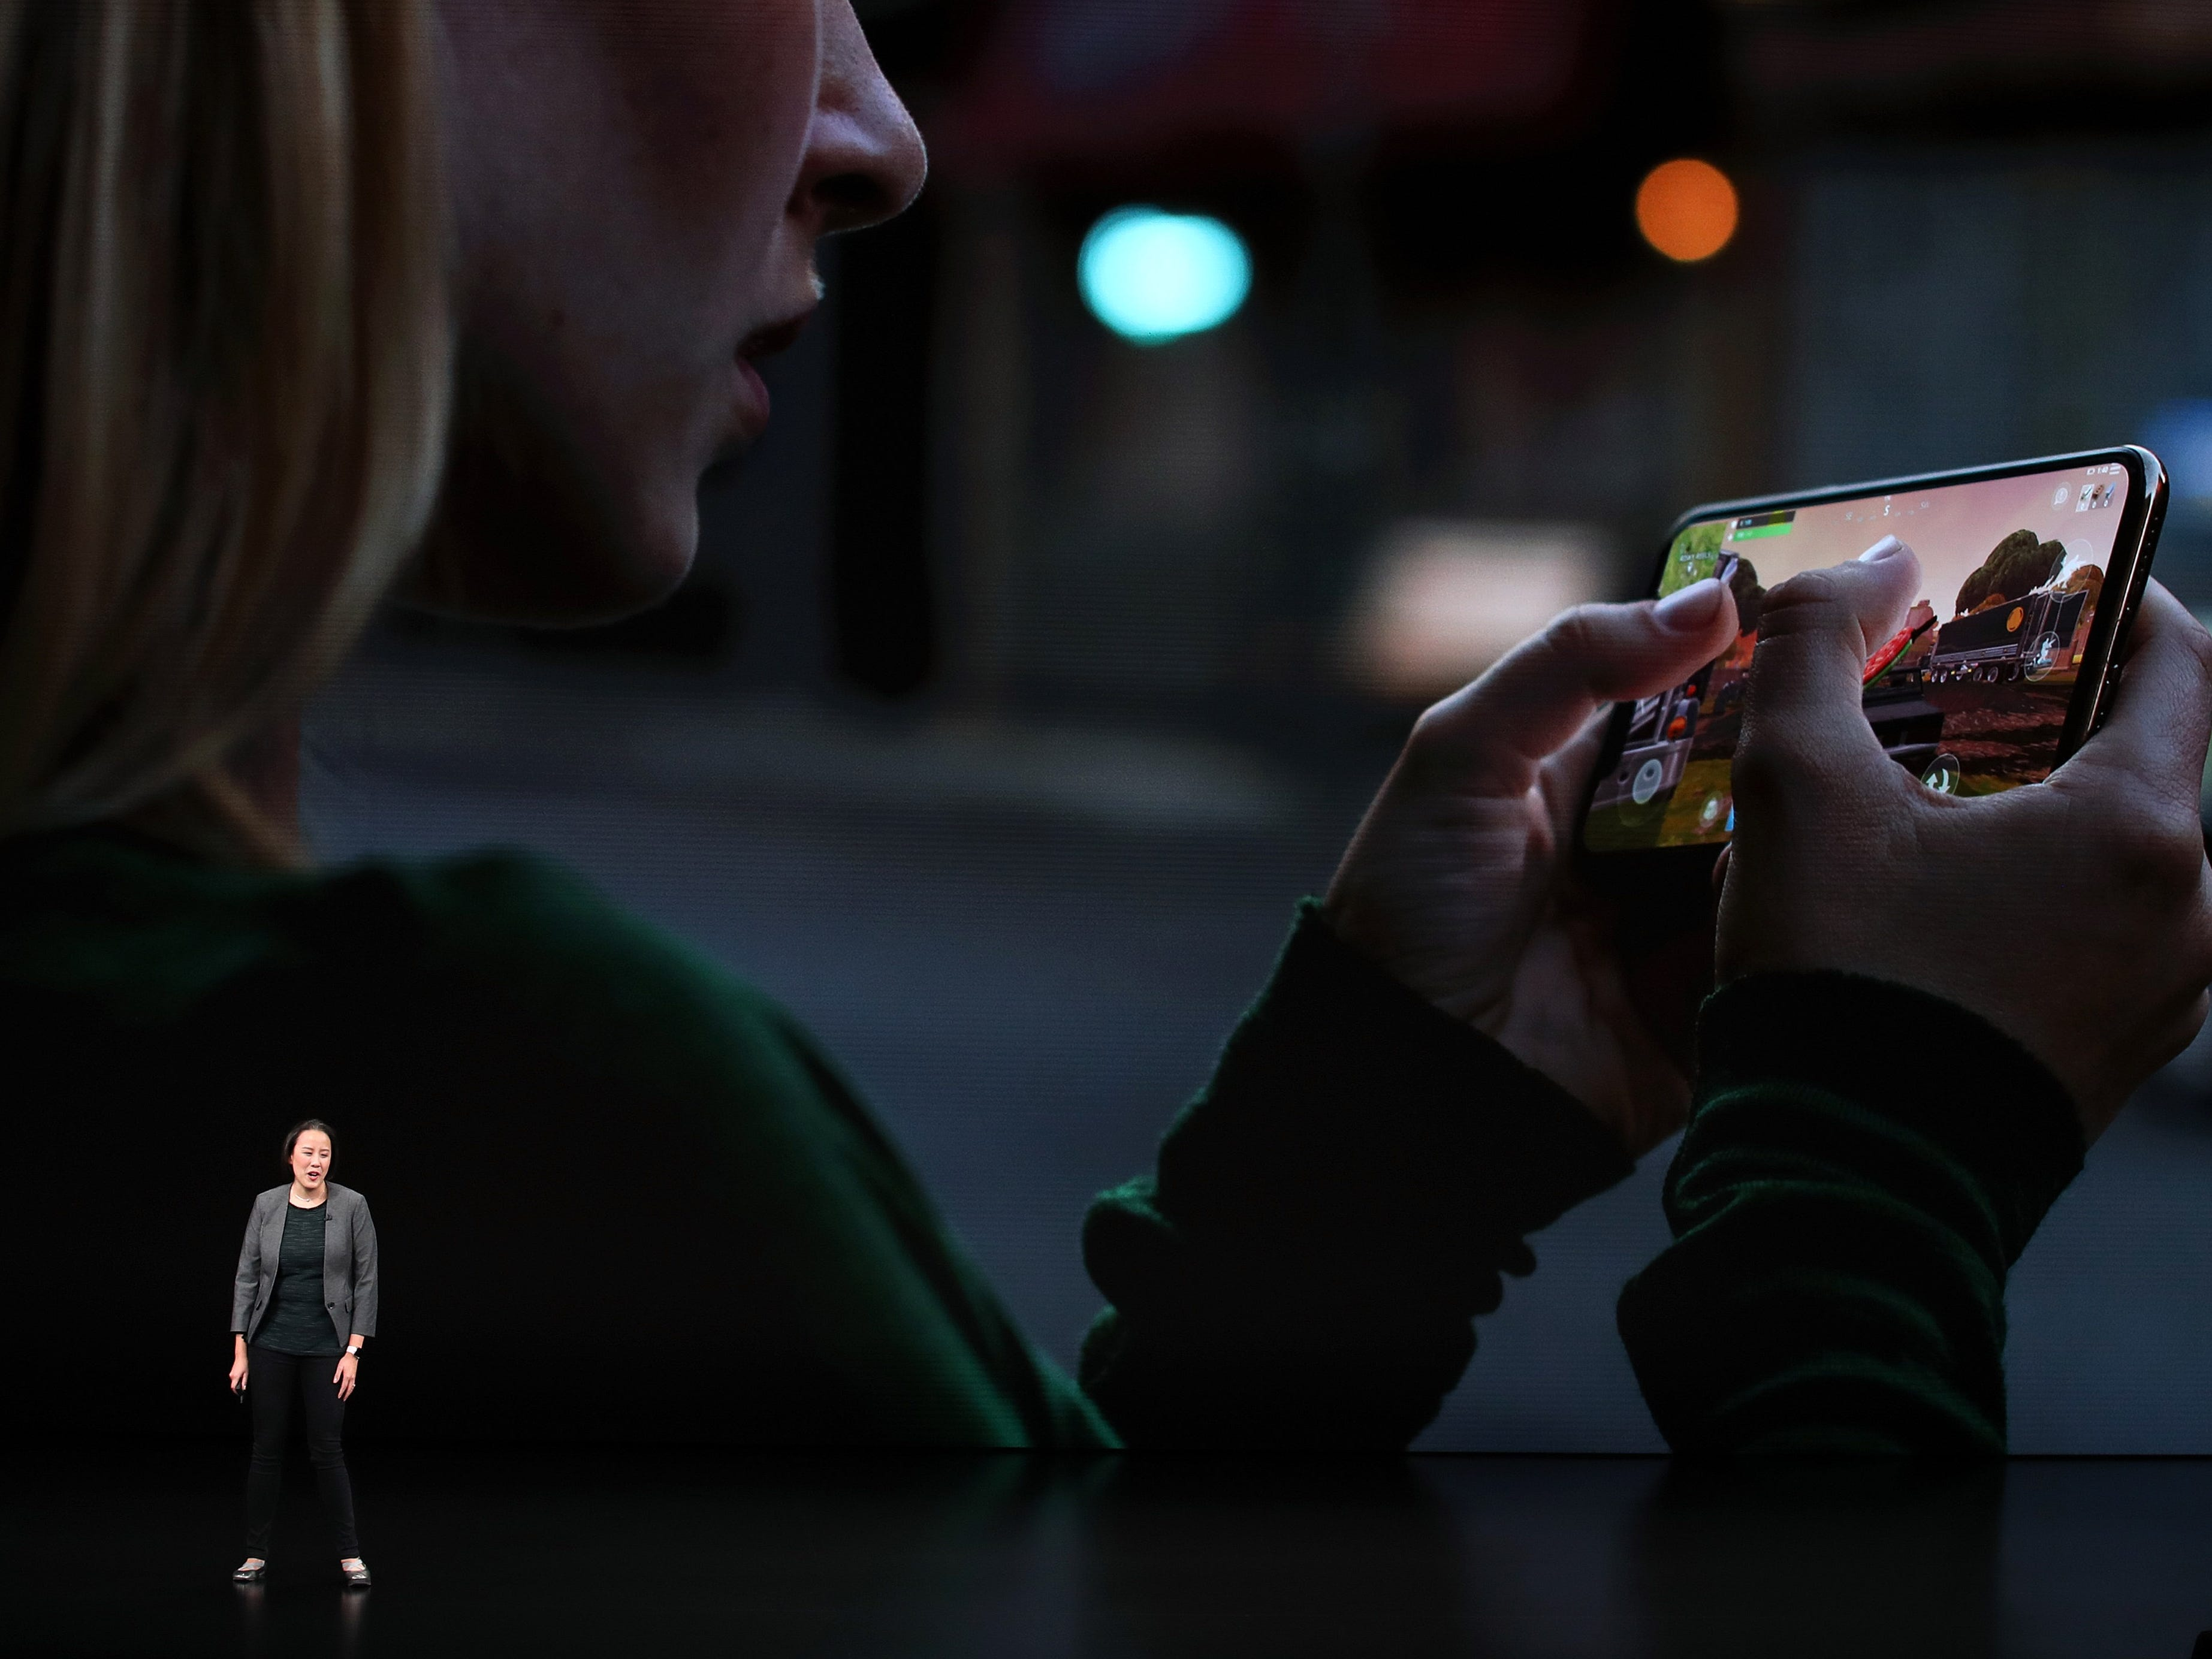 Kaiann Drance, Apple's senior director, iPhone Worldwide Product Marketing, speaks at an Apple event at the Steve Jobs Theater at Apple Park on Sept. 12, 2018, in Cupertino, Calif.